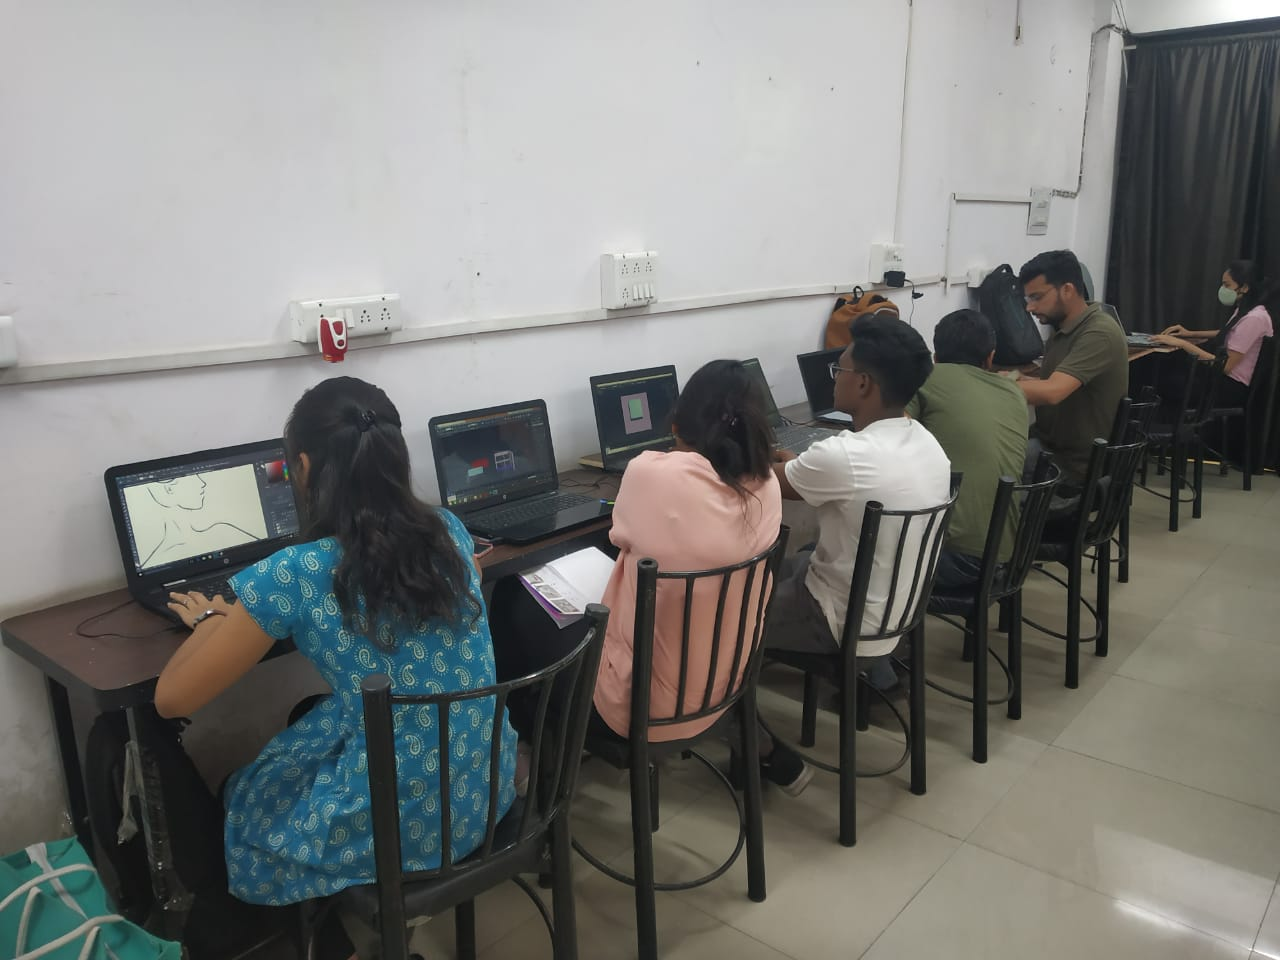 design-centre-institute-of-creativity-and-innovation-indore-chhindwara-gallery (20)